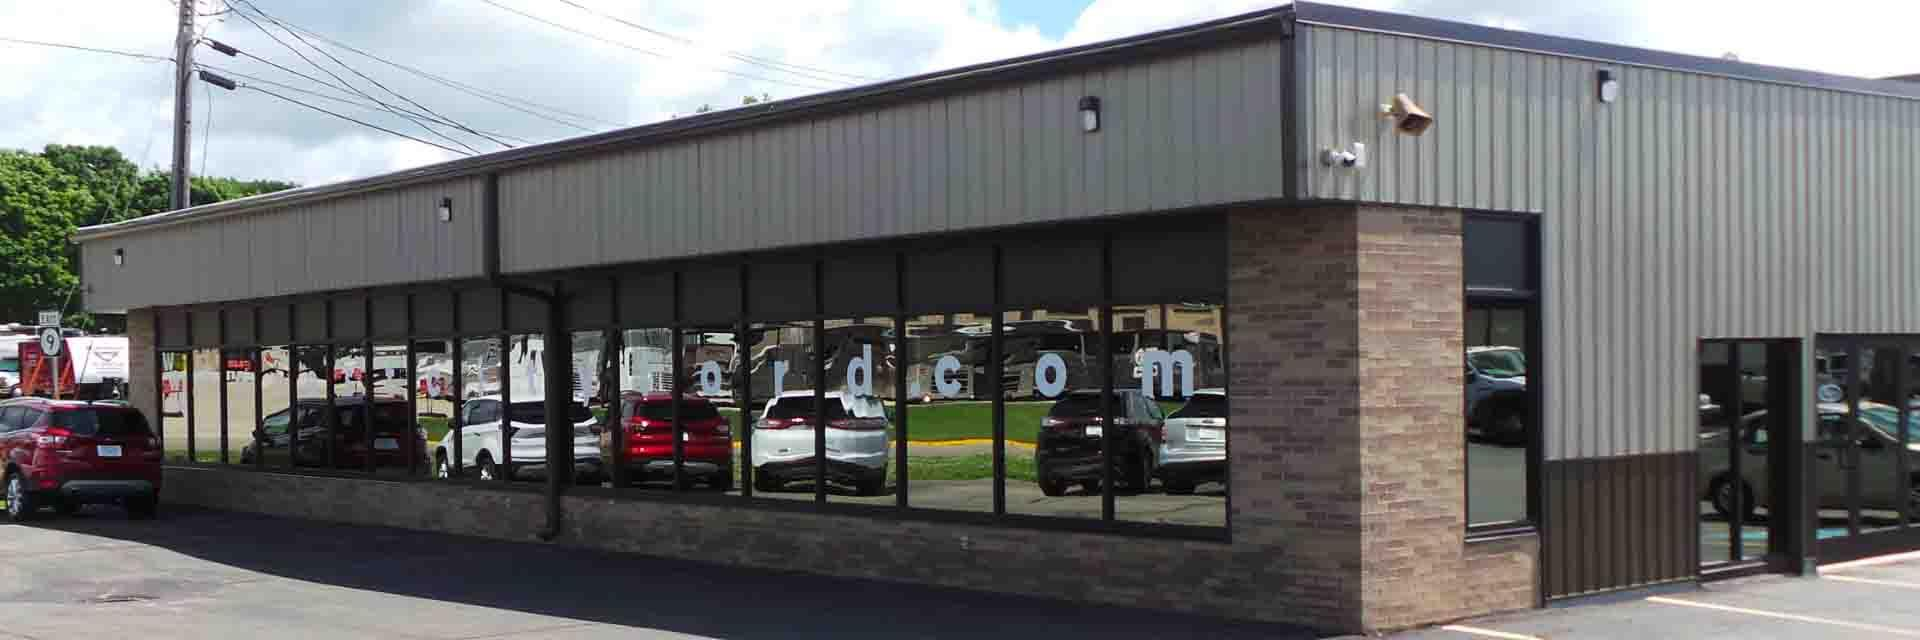 Forest City Ford Forest City IA | New u0026 Used Cars Trucks Sales u0026 Service & Forest City Ford Forest City IA | New u0026 Used Cars Trucks Sales ... markmcfarlin.com